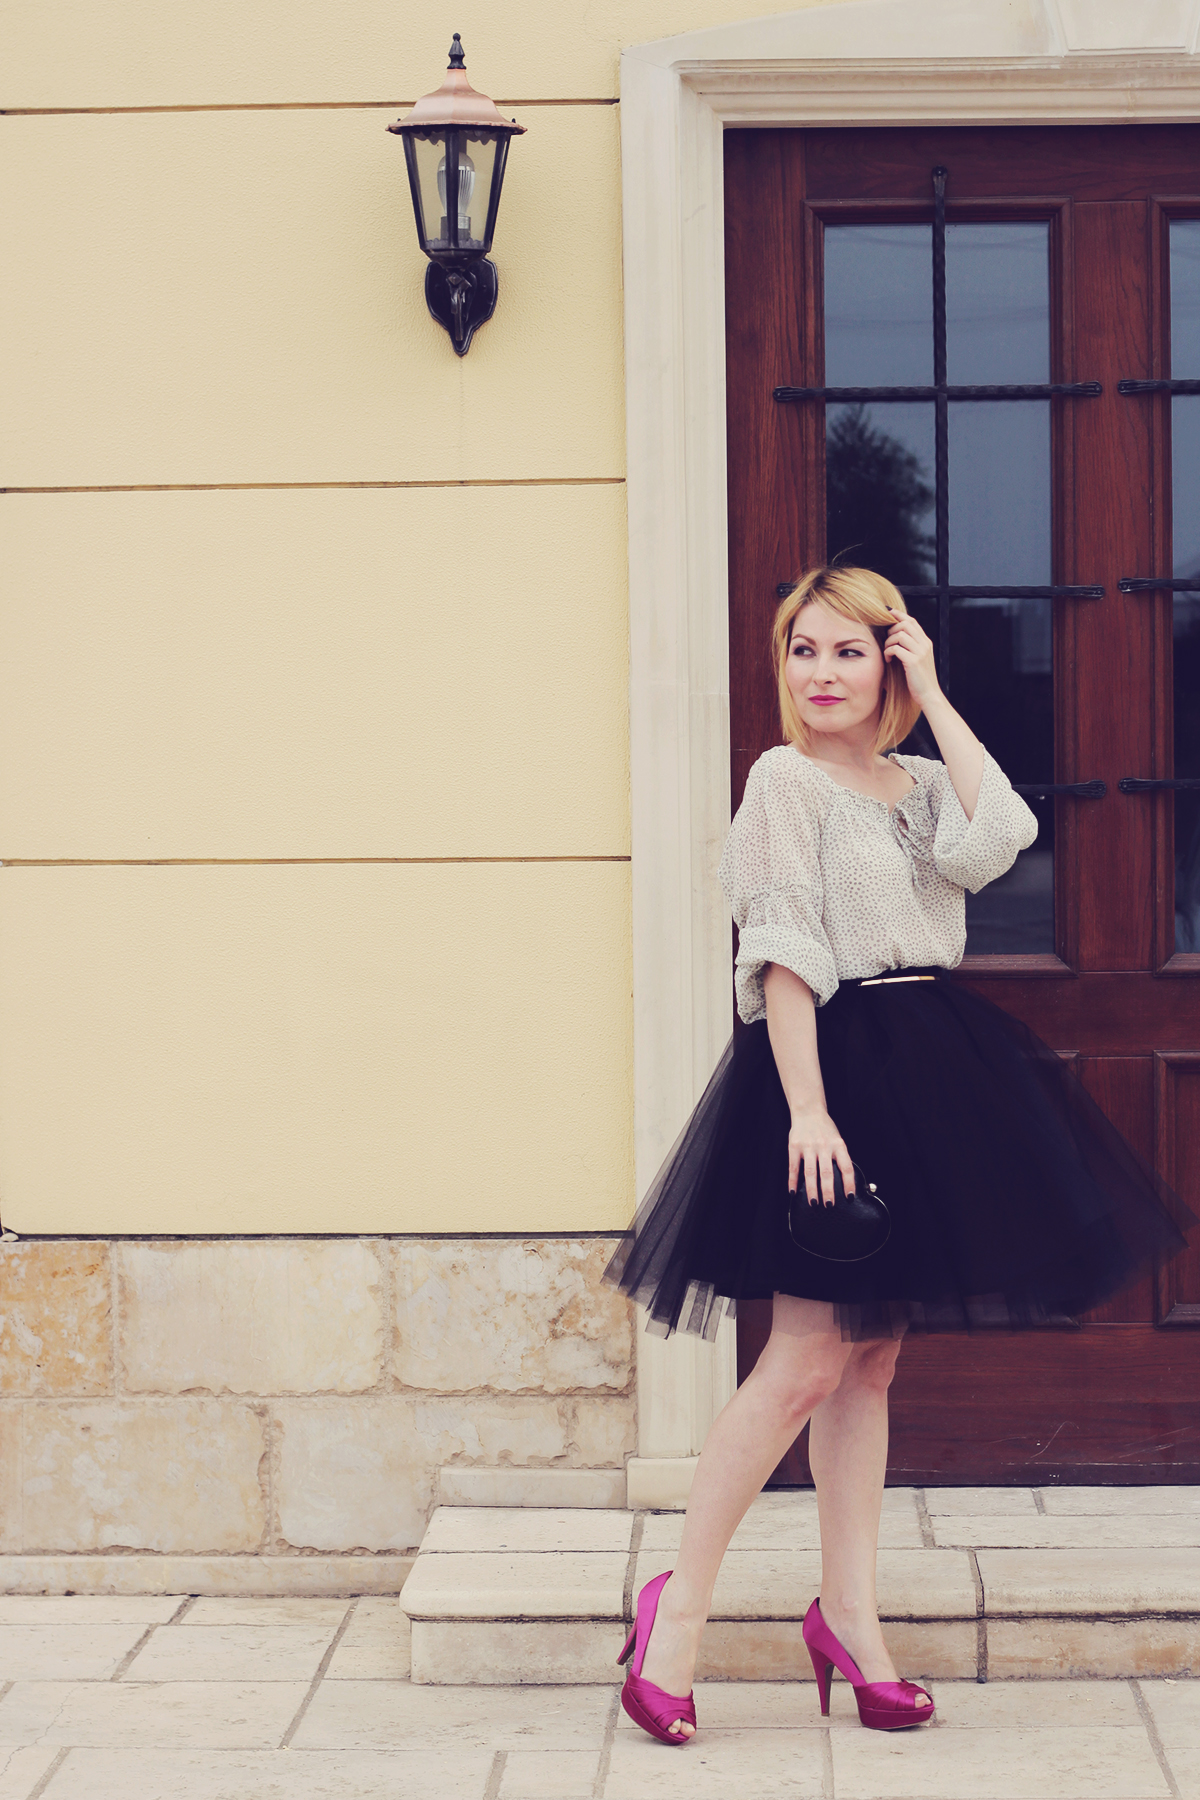 the black tulle skirt and pink peep-toe pumps